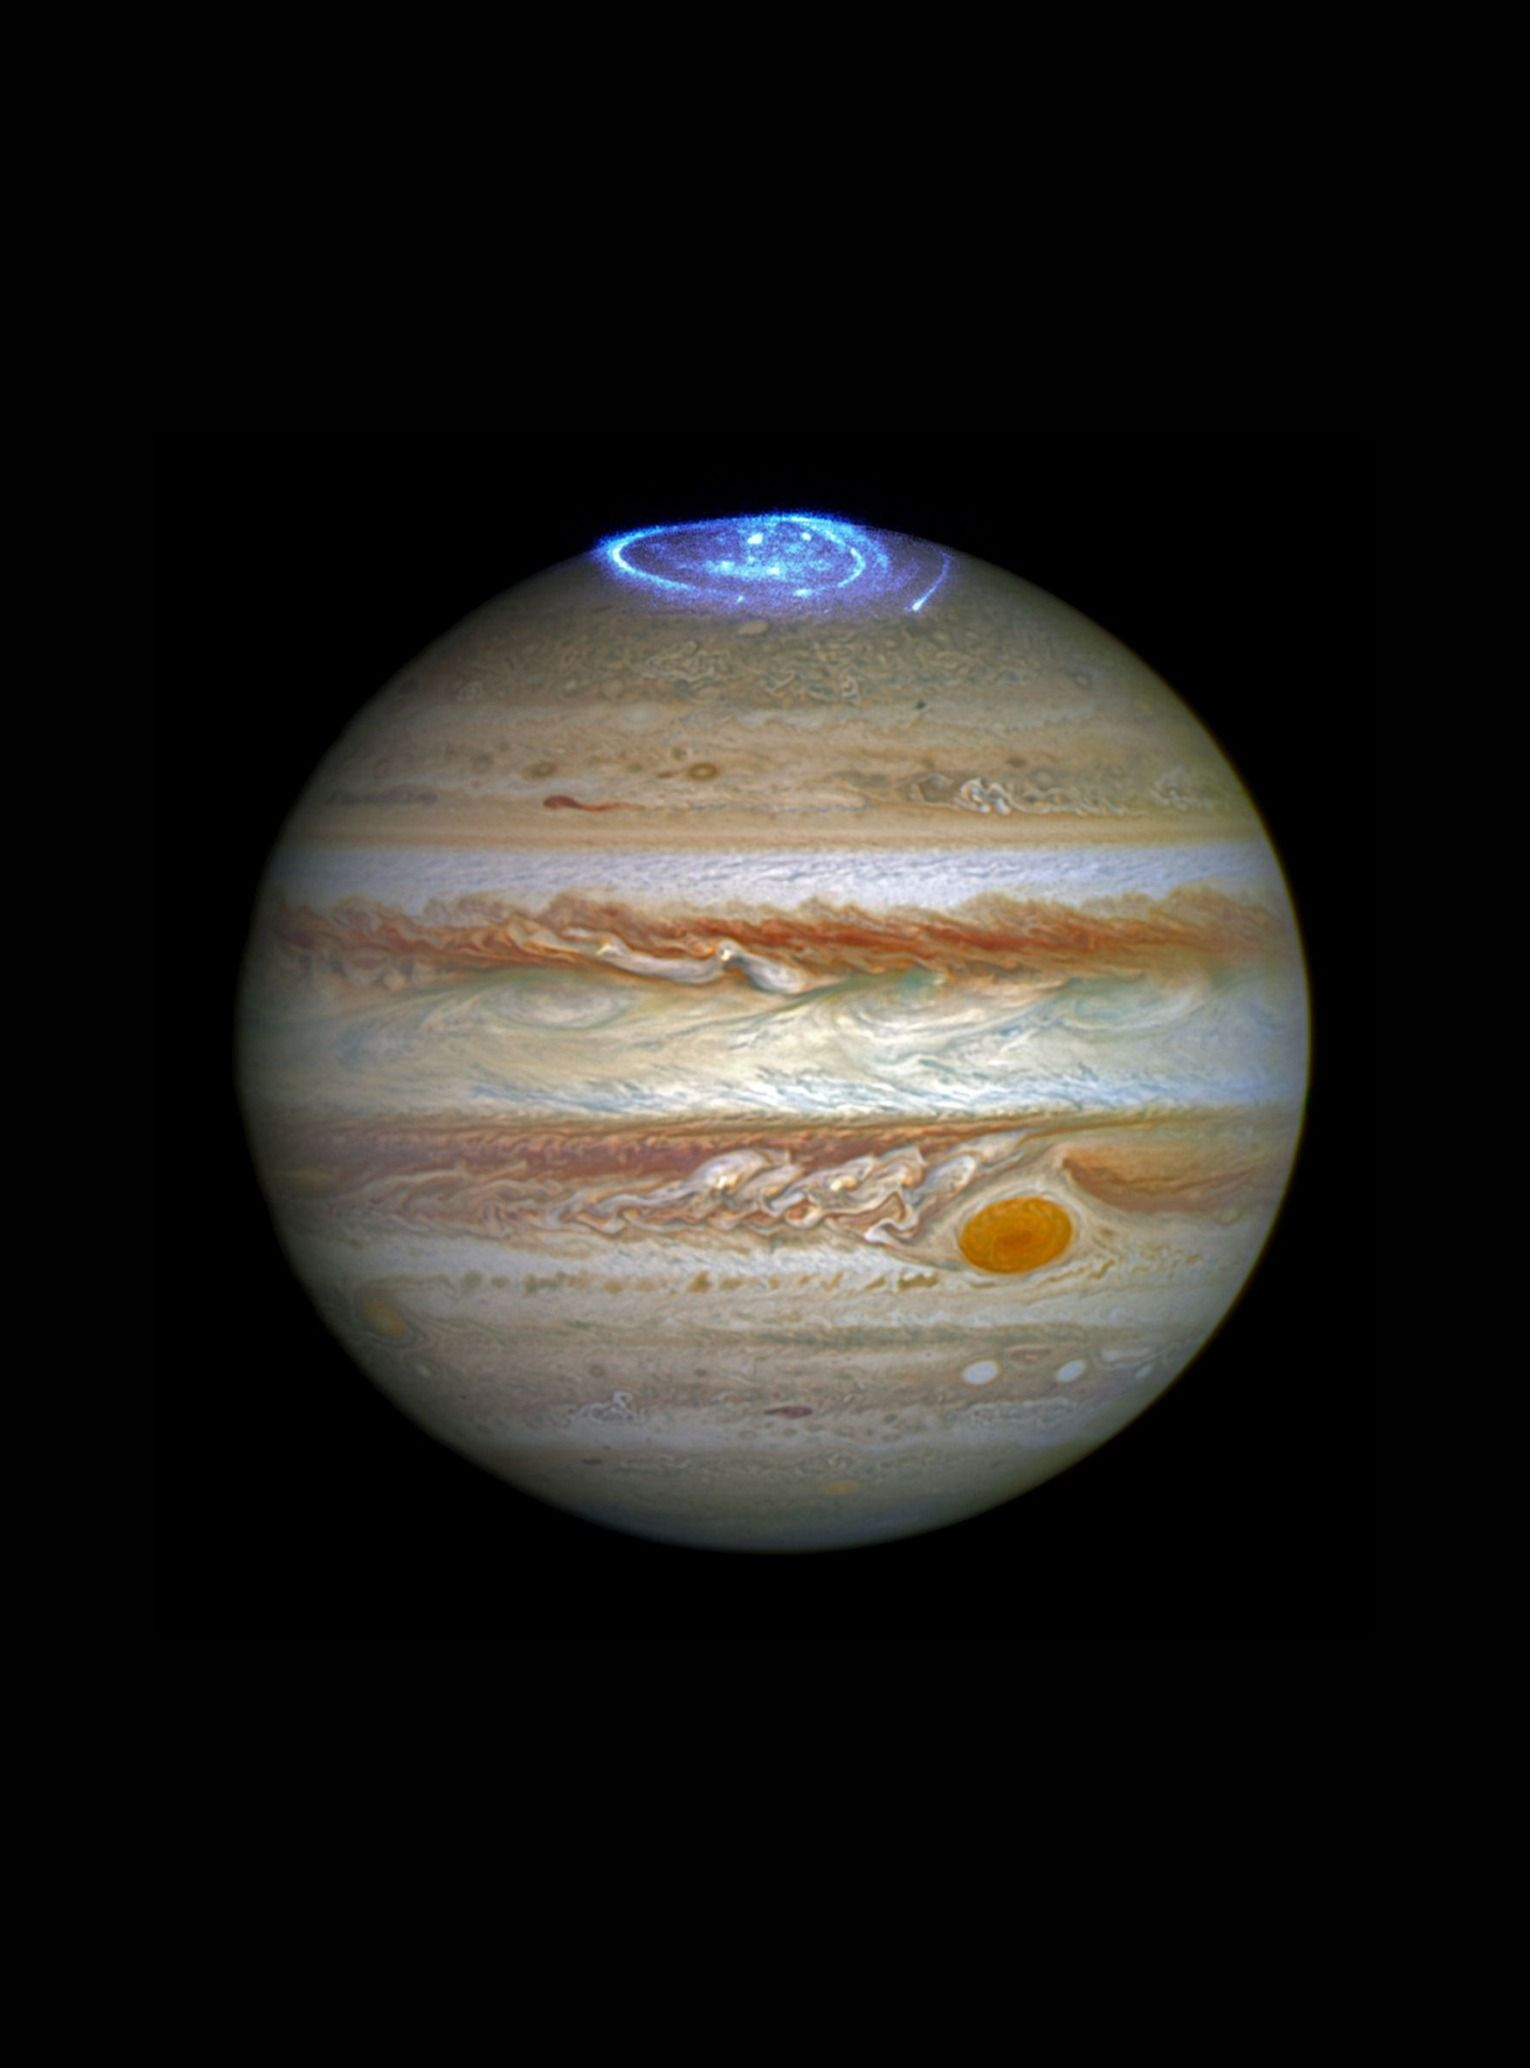 Check out what Jupiter's Northern Light's look like